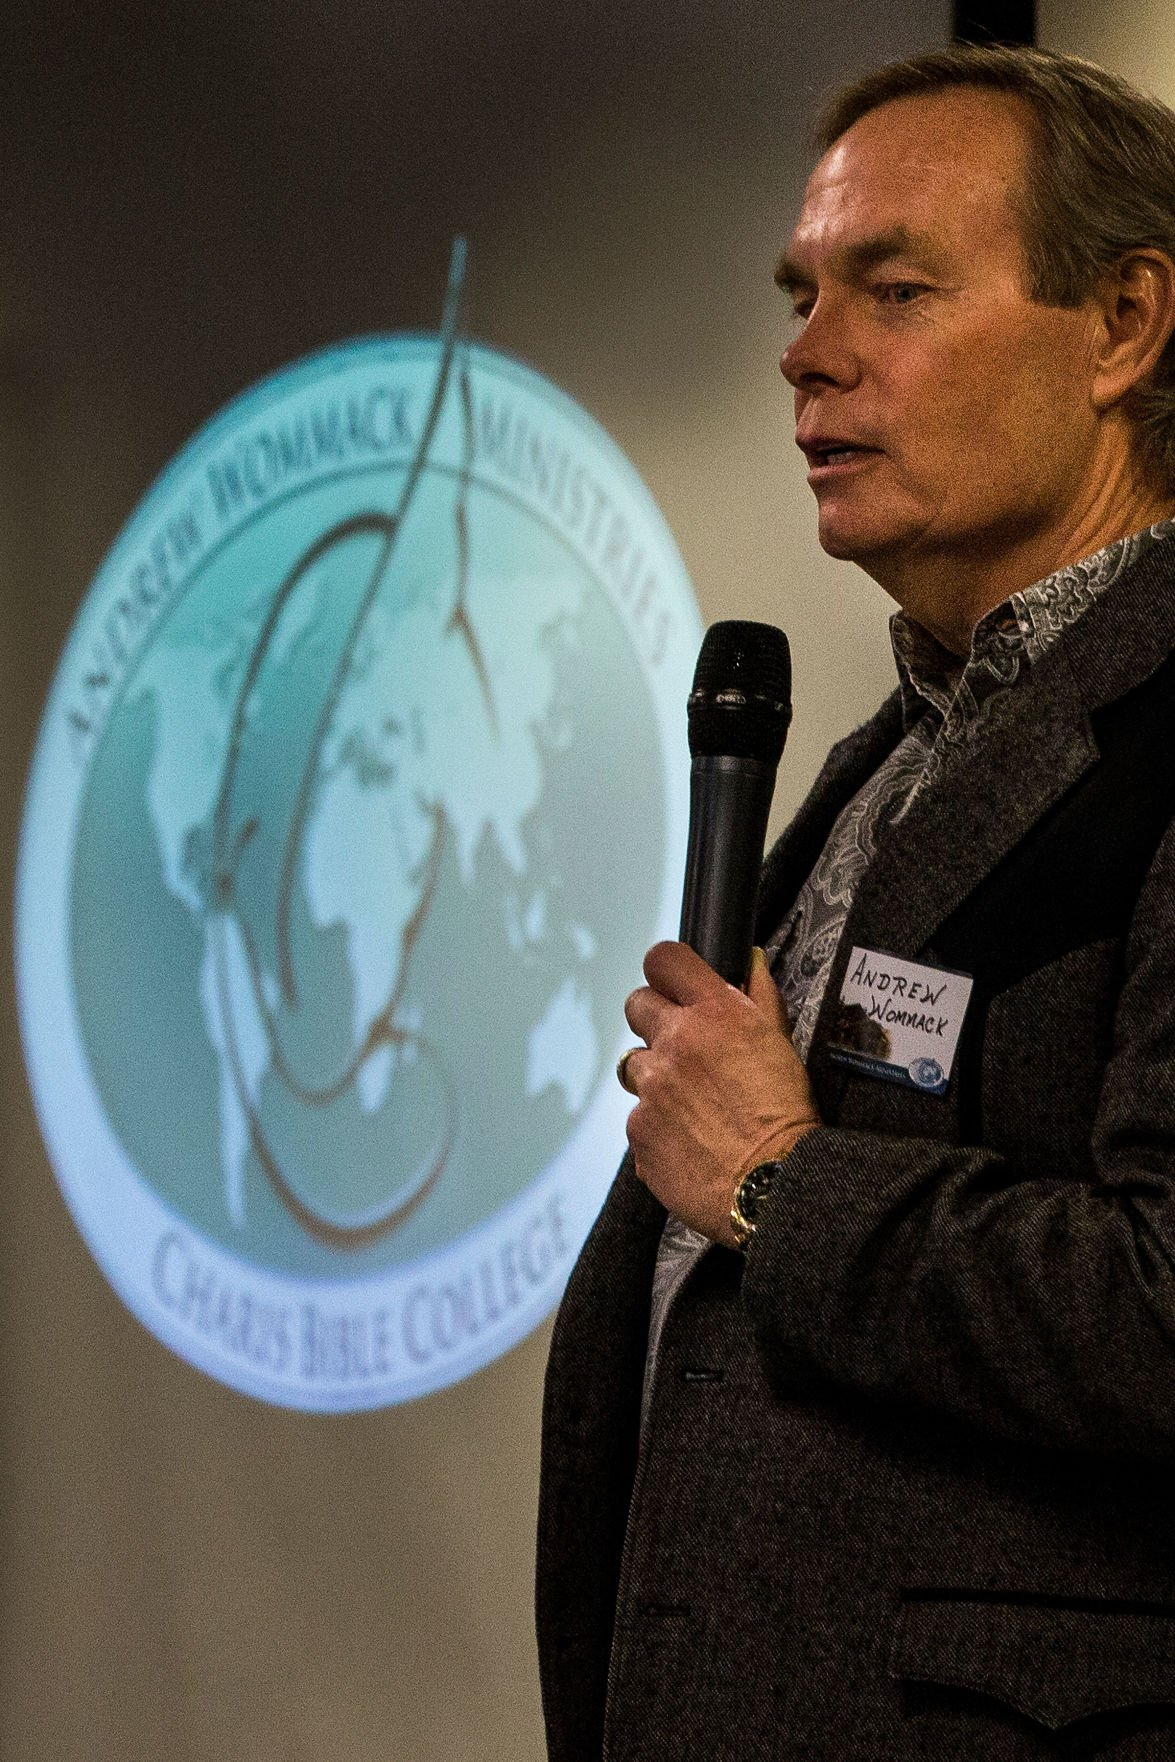 Andrew Wommack Beliefs bible college hopes to be 'blessing' to woodland park